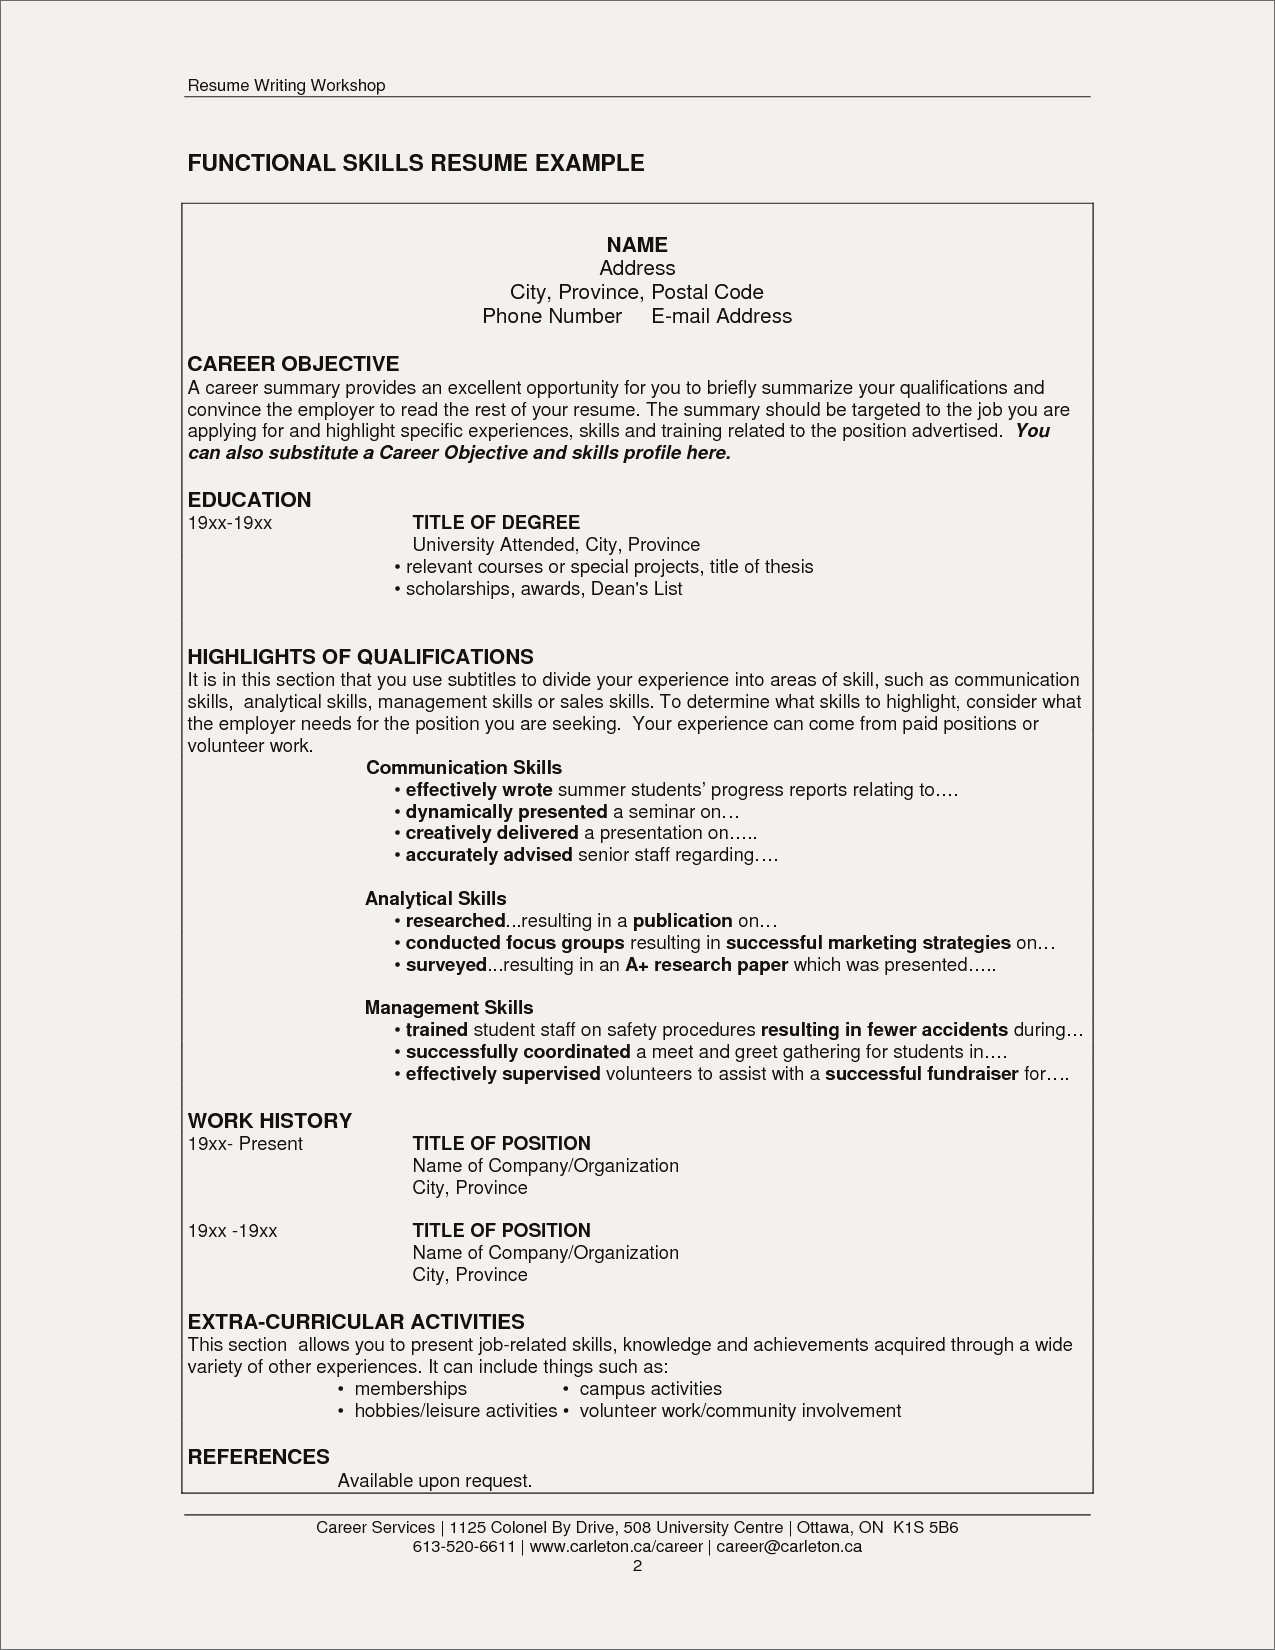 Employer Name Example - Skills and Abilities to Put A Resume Refrence Resume Skills and